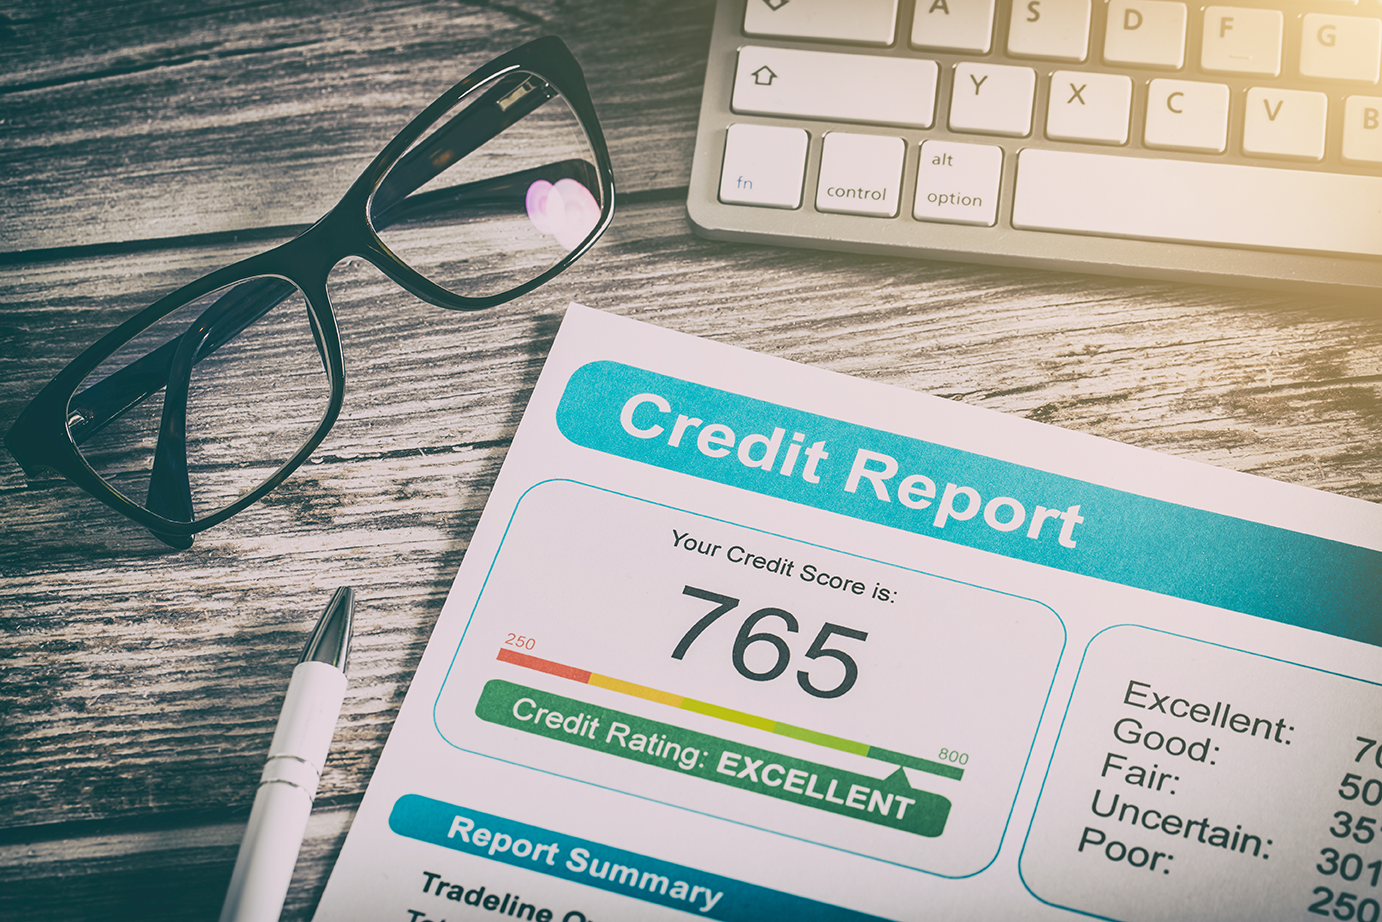 A credit report lying on desk with the number 765.